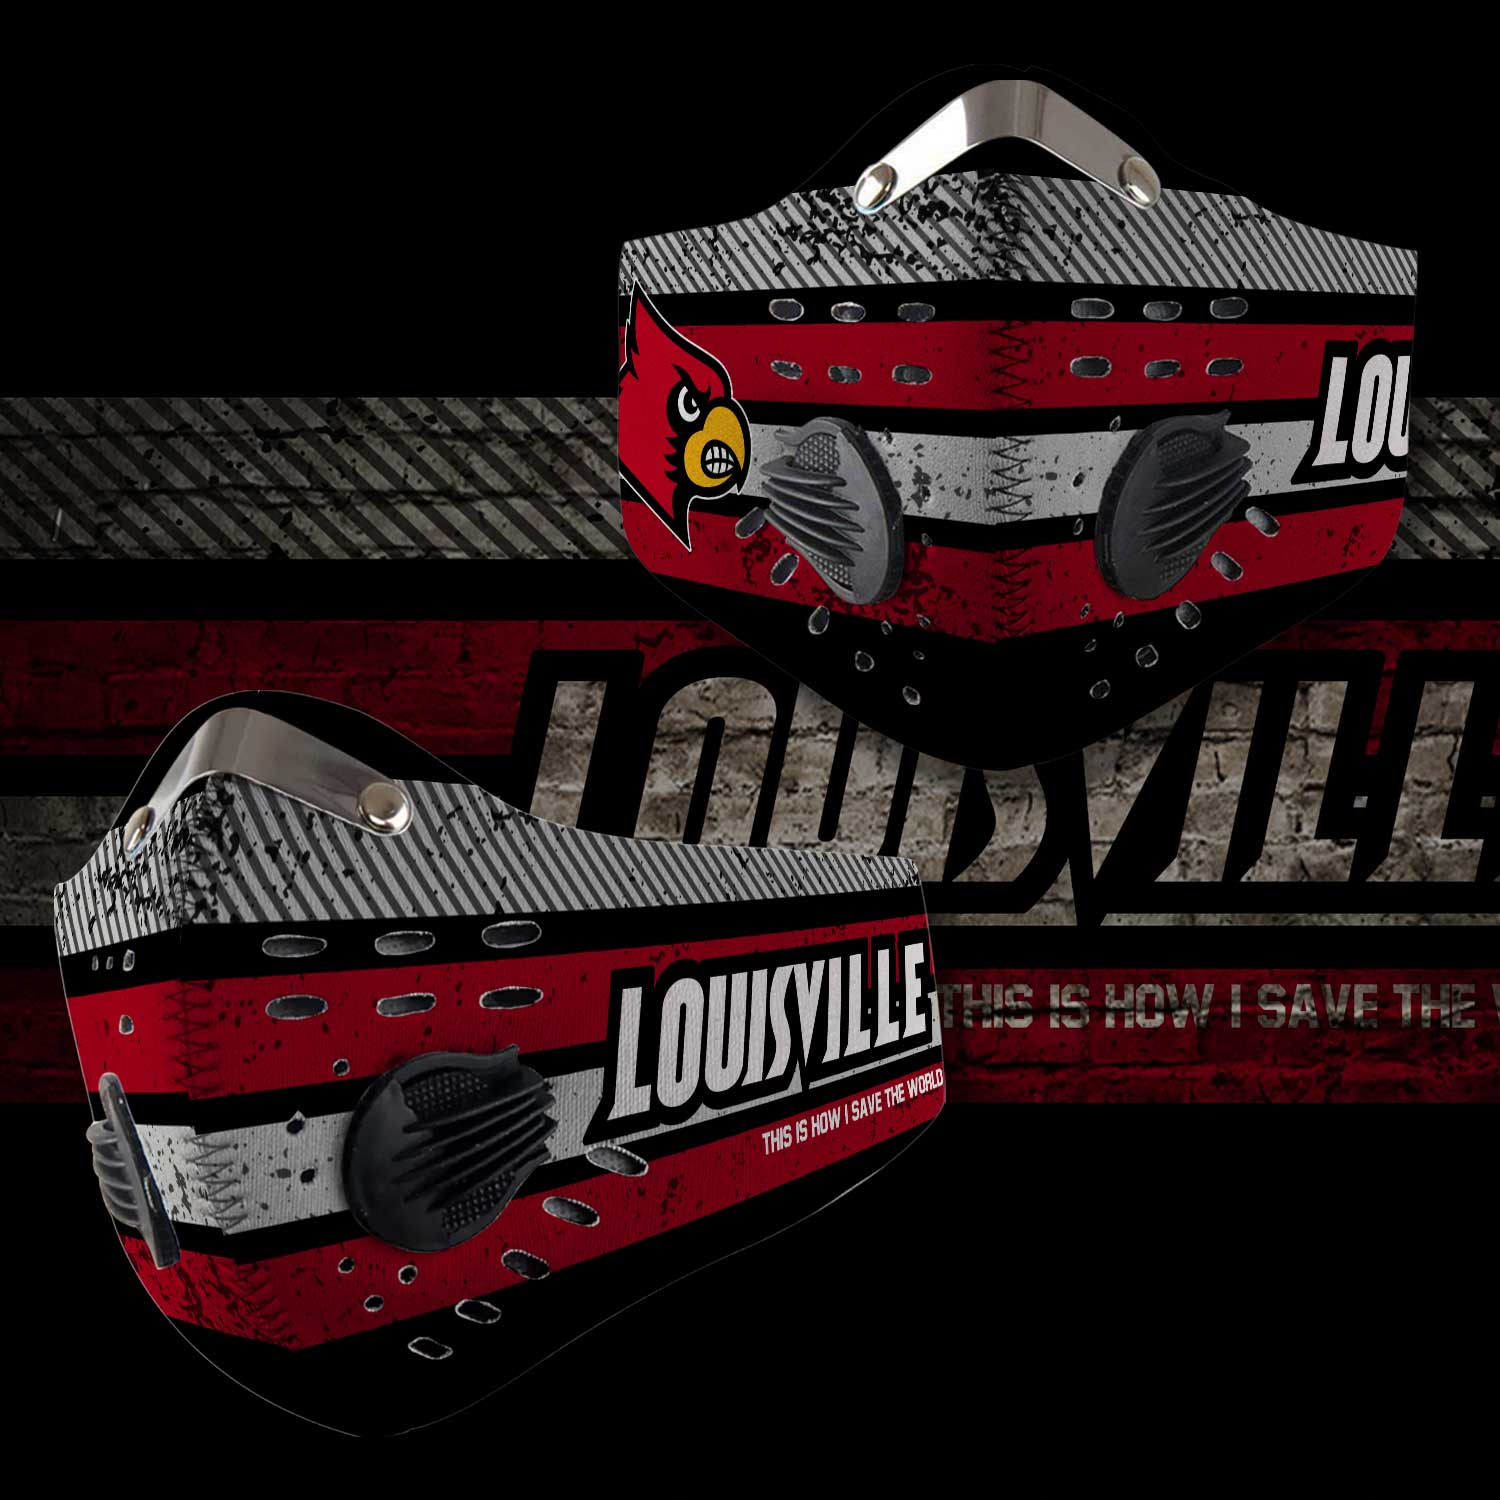 Louisville cardinals this is how i save the world carbon filter face mask 2